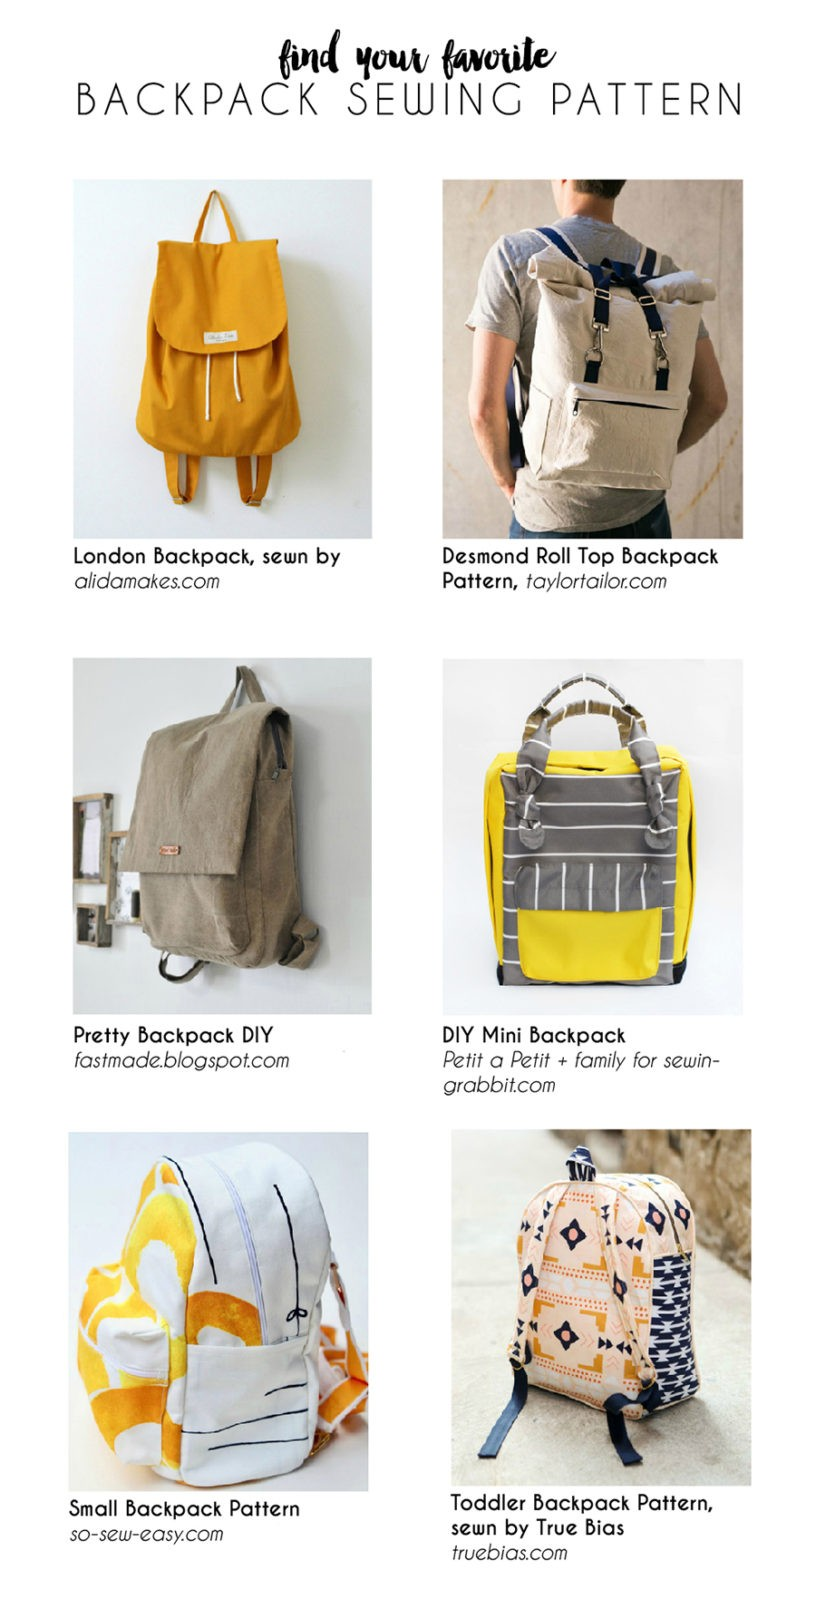 find your favorite backpack pattern!